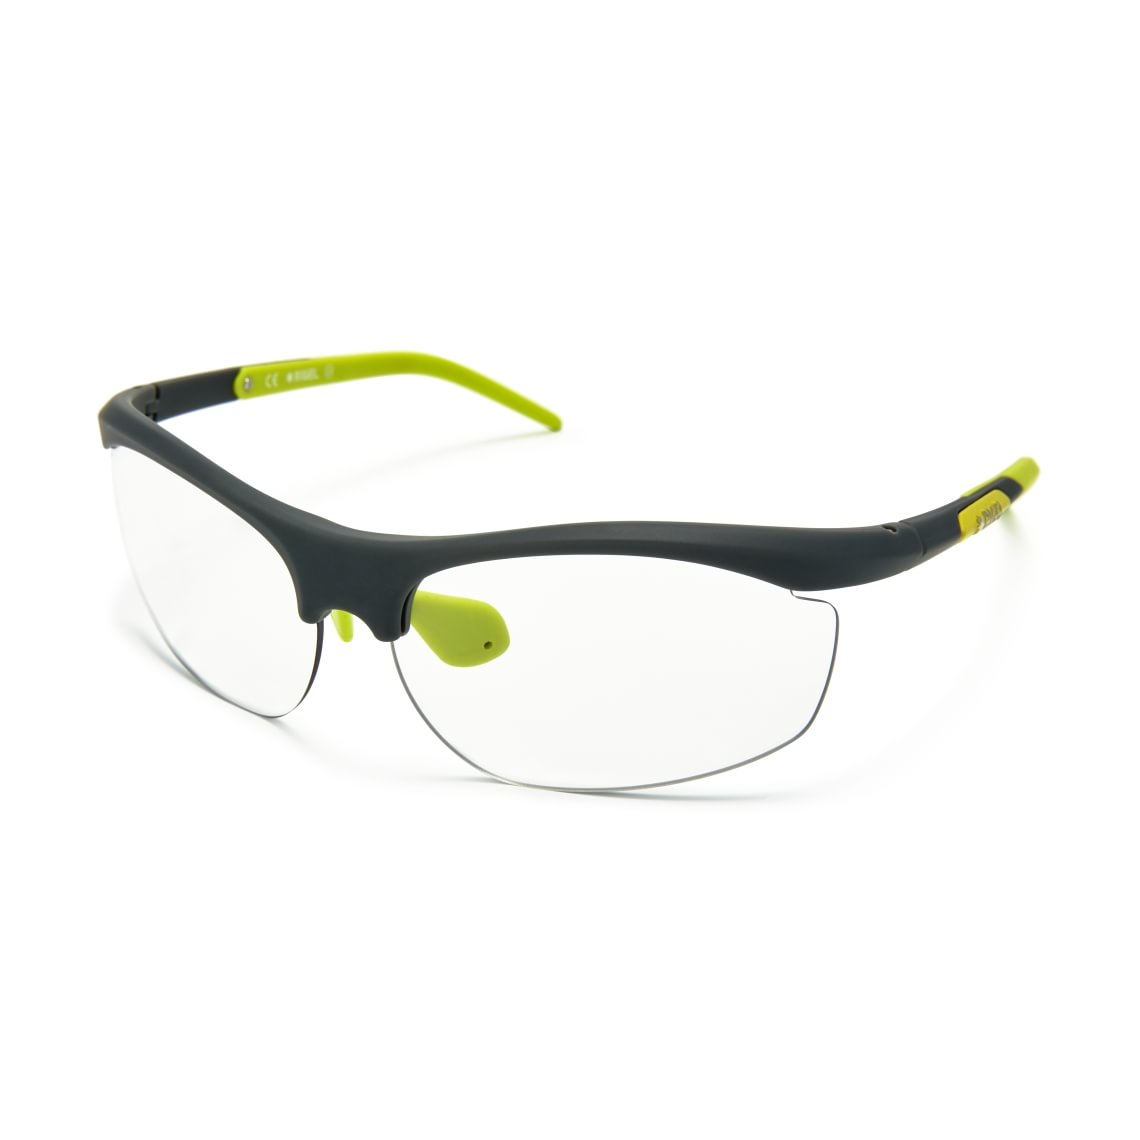 RIGEL Photochromic Hero C5 6417